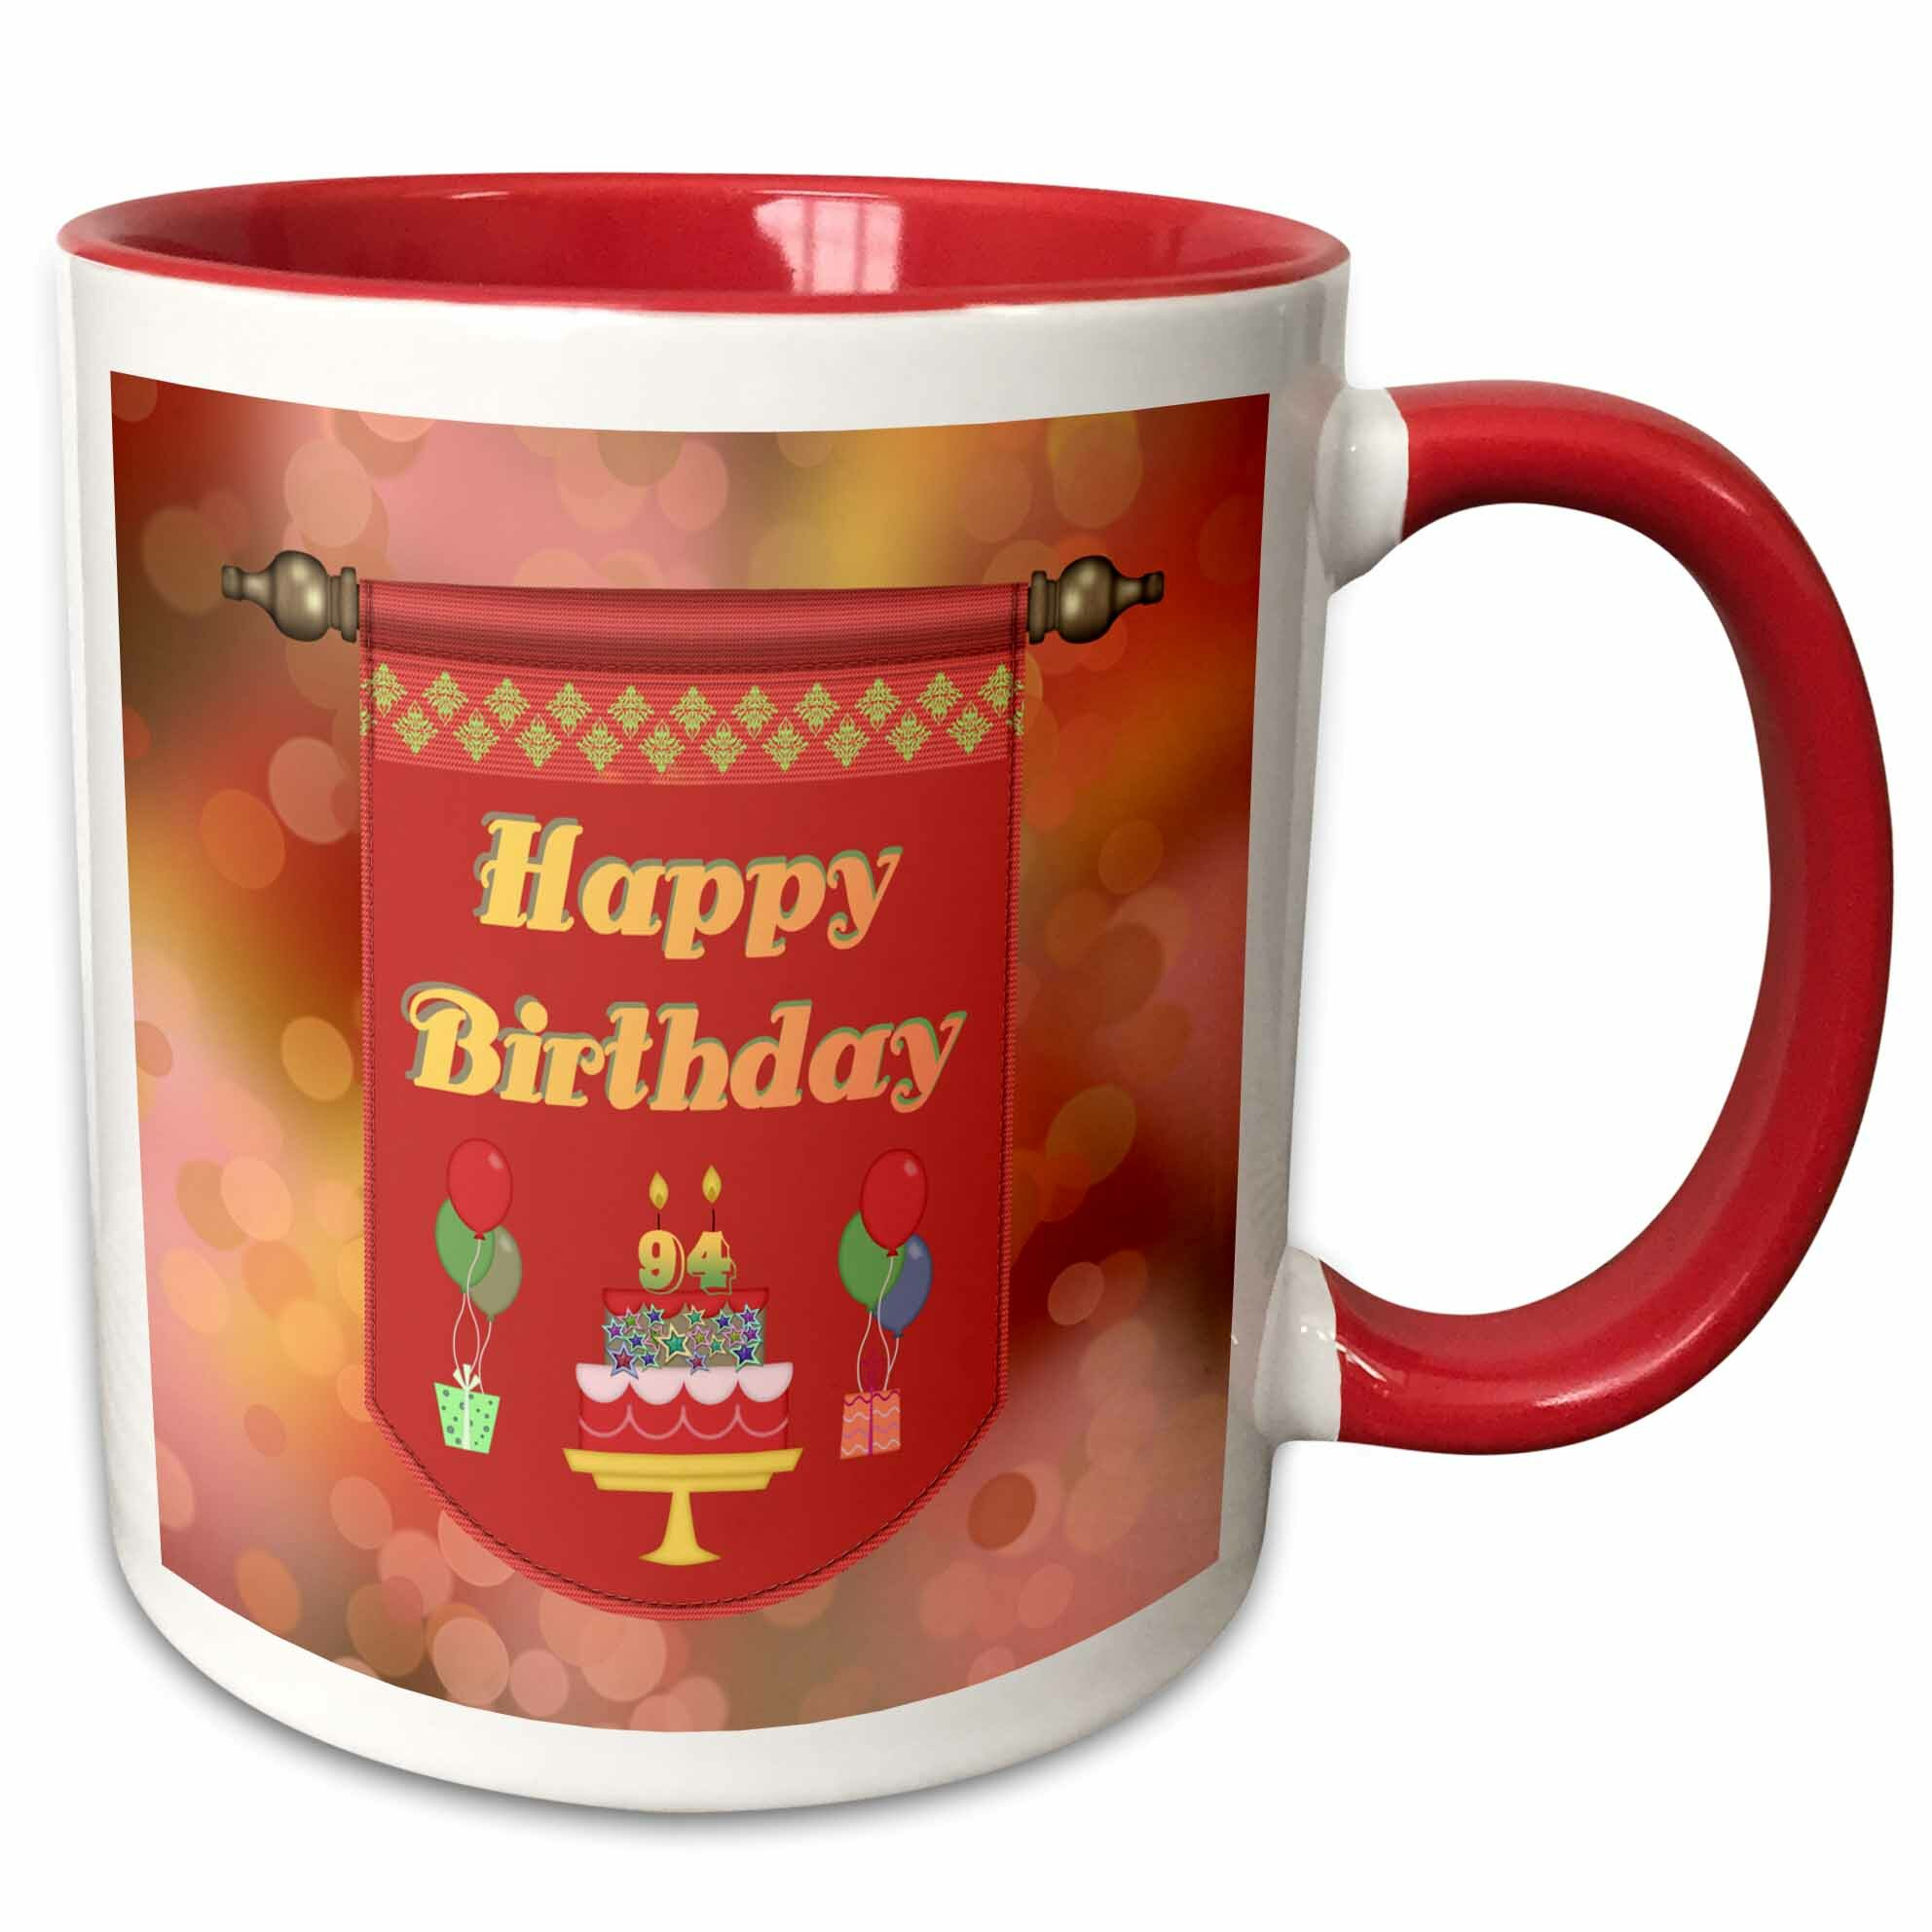 The Party Aisle Happy 94th Birthday Banner Cake With Gifts And Balloons Coffee Mug